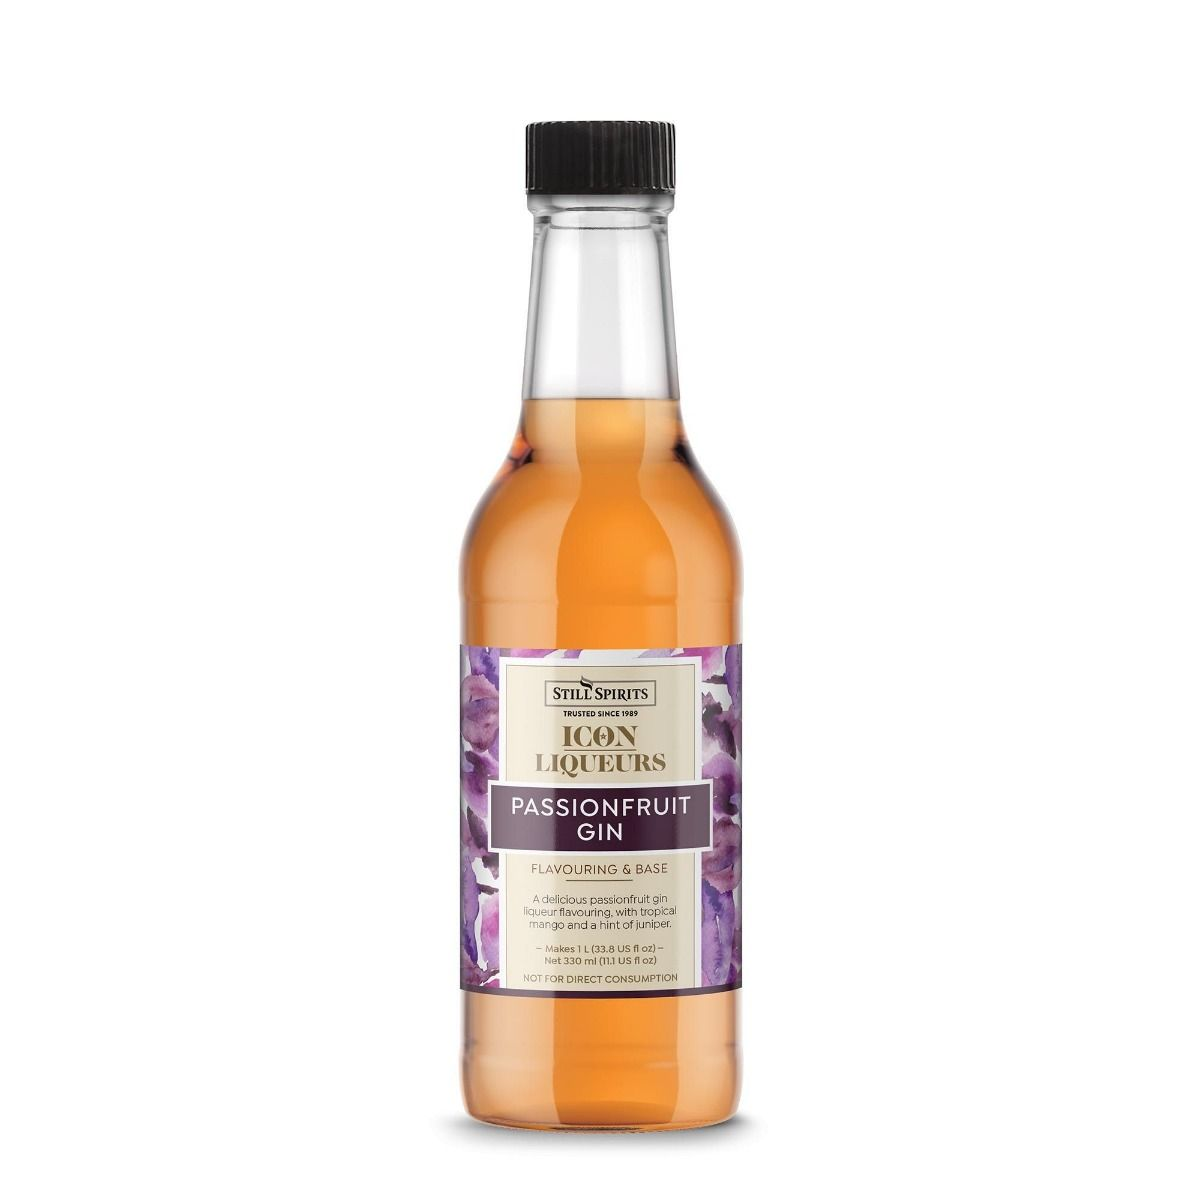 Icon Liqueurs Passion Fruit Gin Flavouring